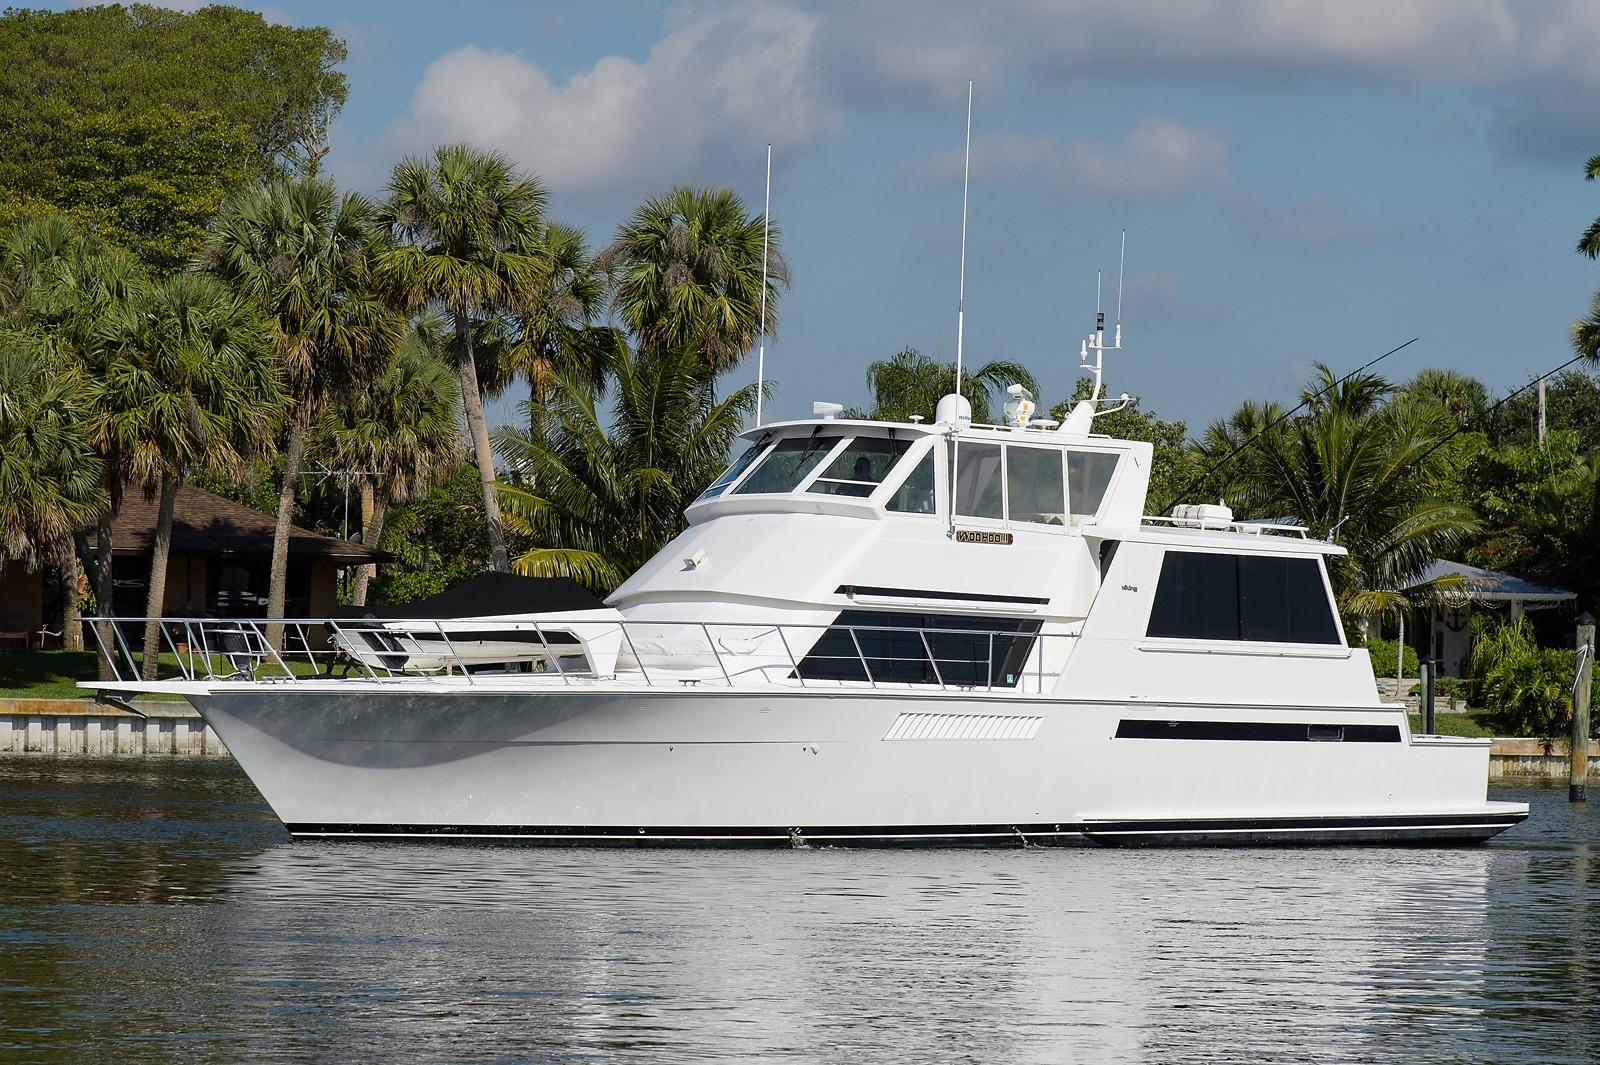 60 viking boat 1997 woo hoo for sale in palm beach On 60 viking motor yacht for sale